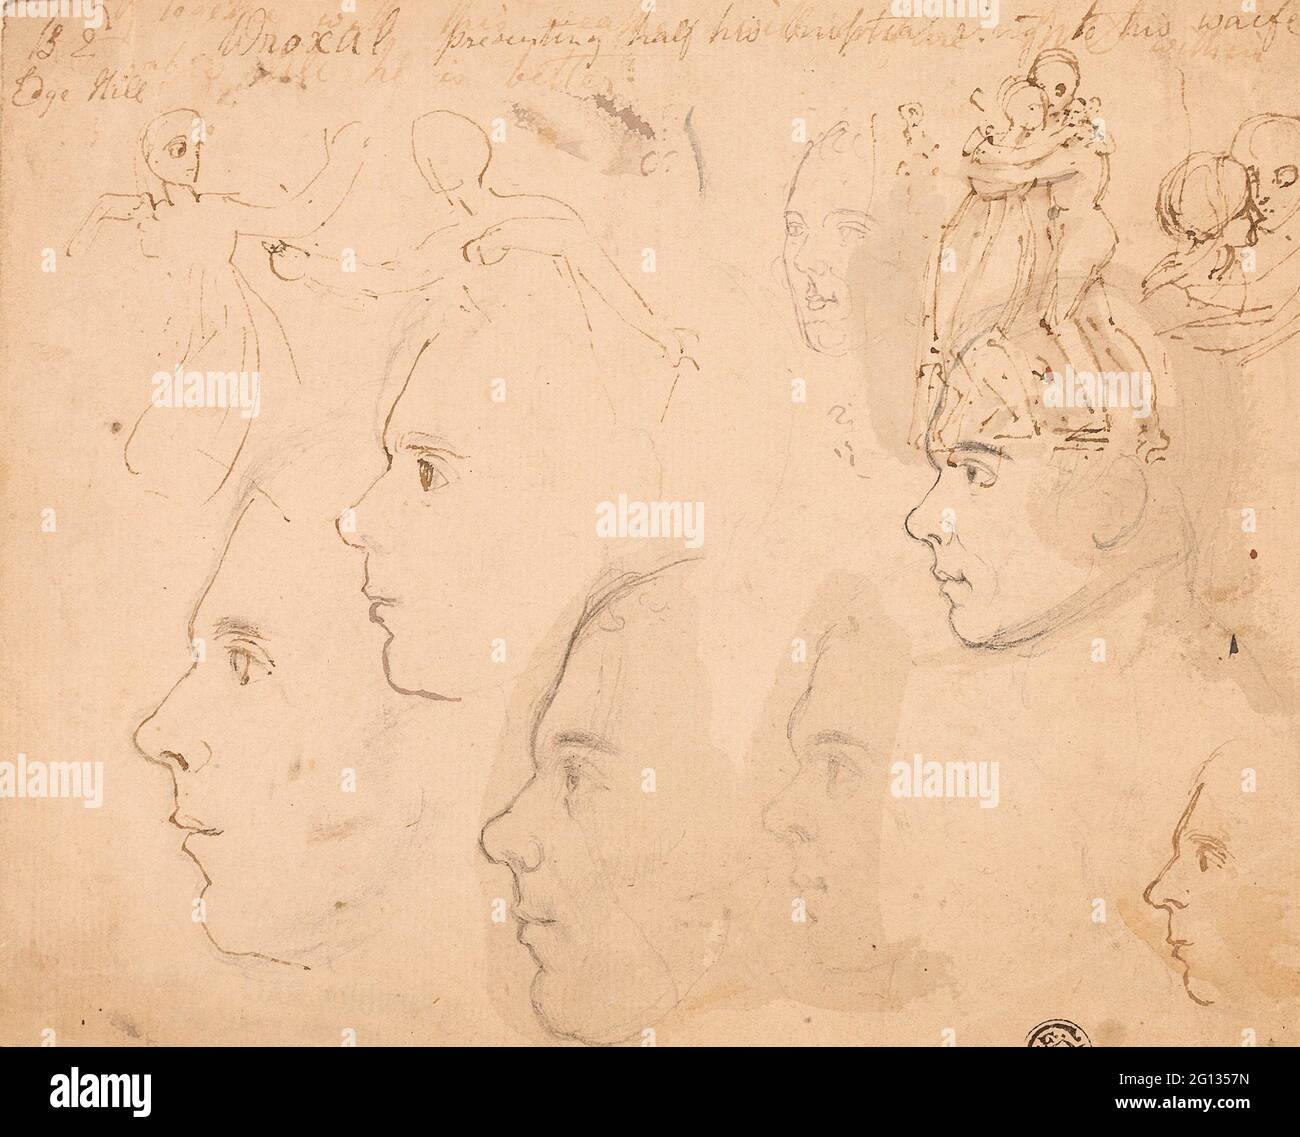 Author: Thomas Stothard. Sketches of Male Profiles, Couple Embracing - Attributed to Thomas Stothard English, 1755-1834. Graphite and pen and brown Stock Photo